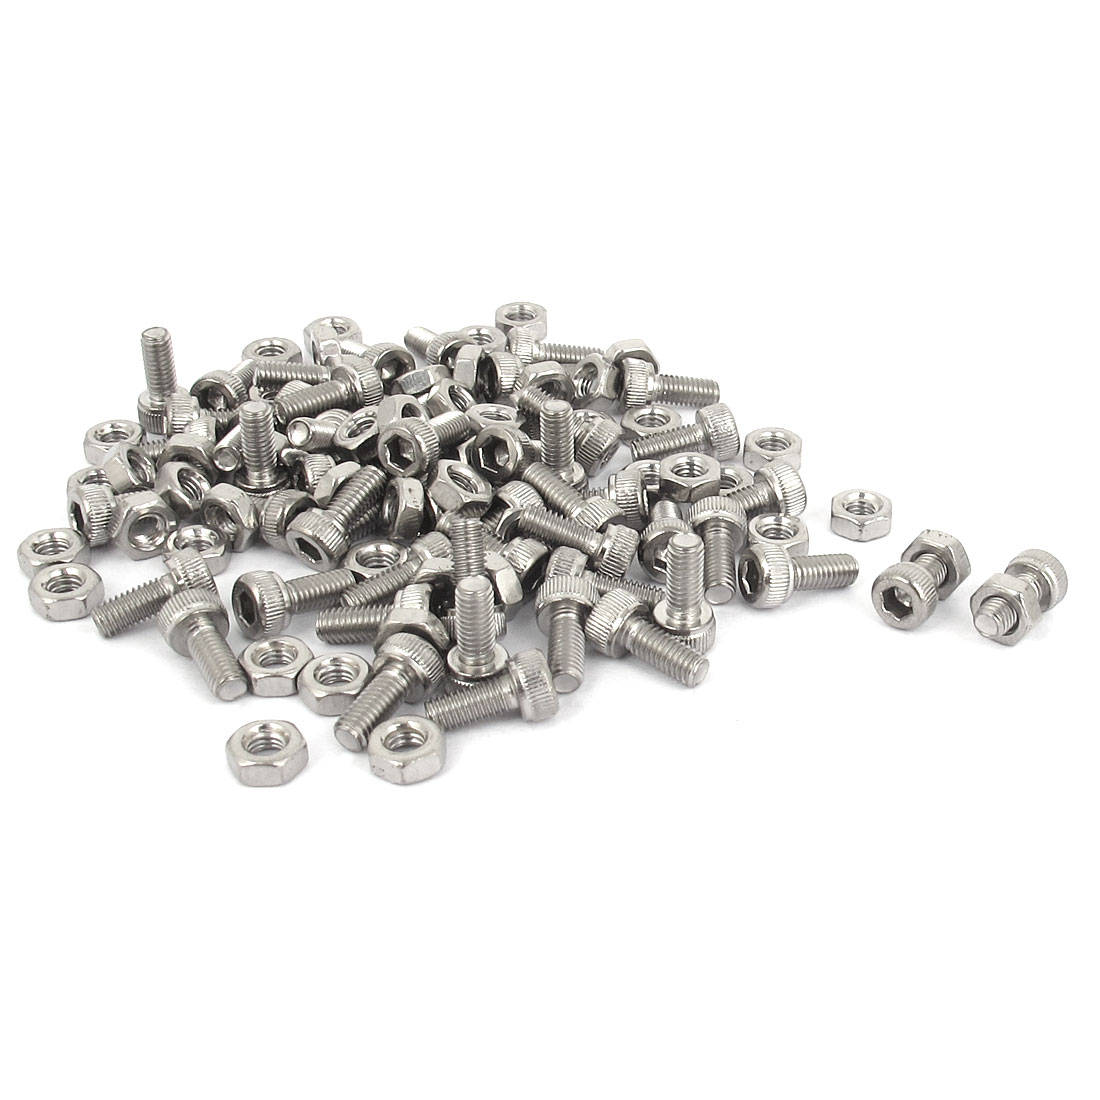 M3x7mm Stainless Steel Hex Socket Head Knurled Cap Screws Bolts Nut Set 50Pcs